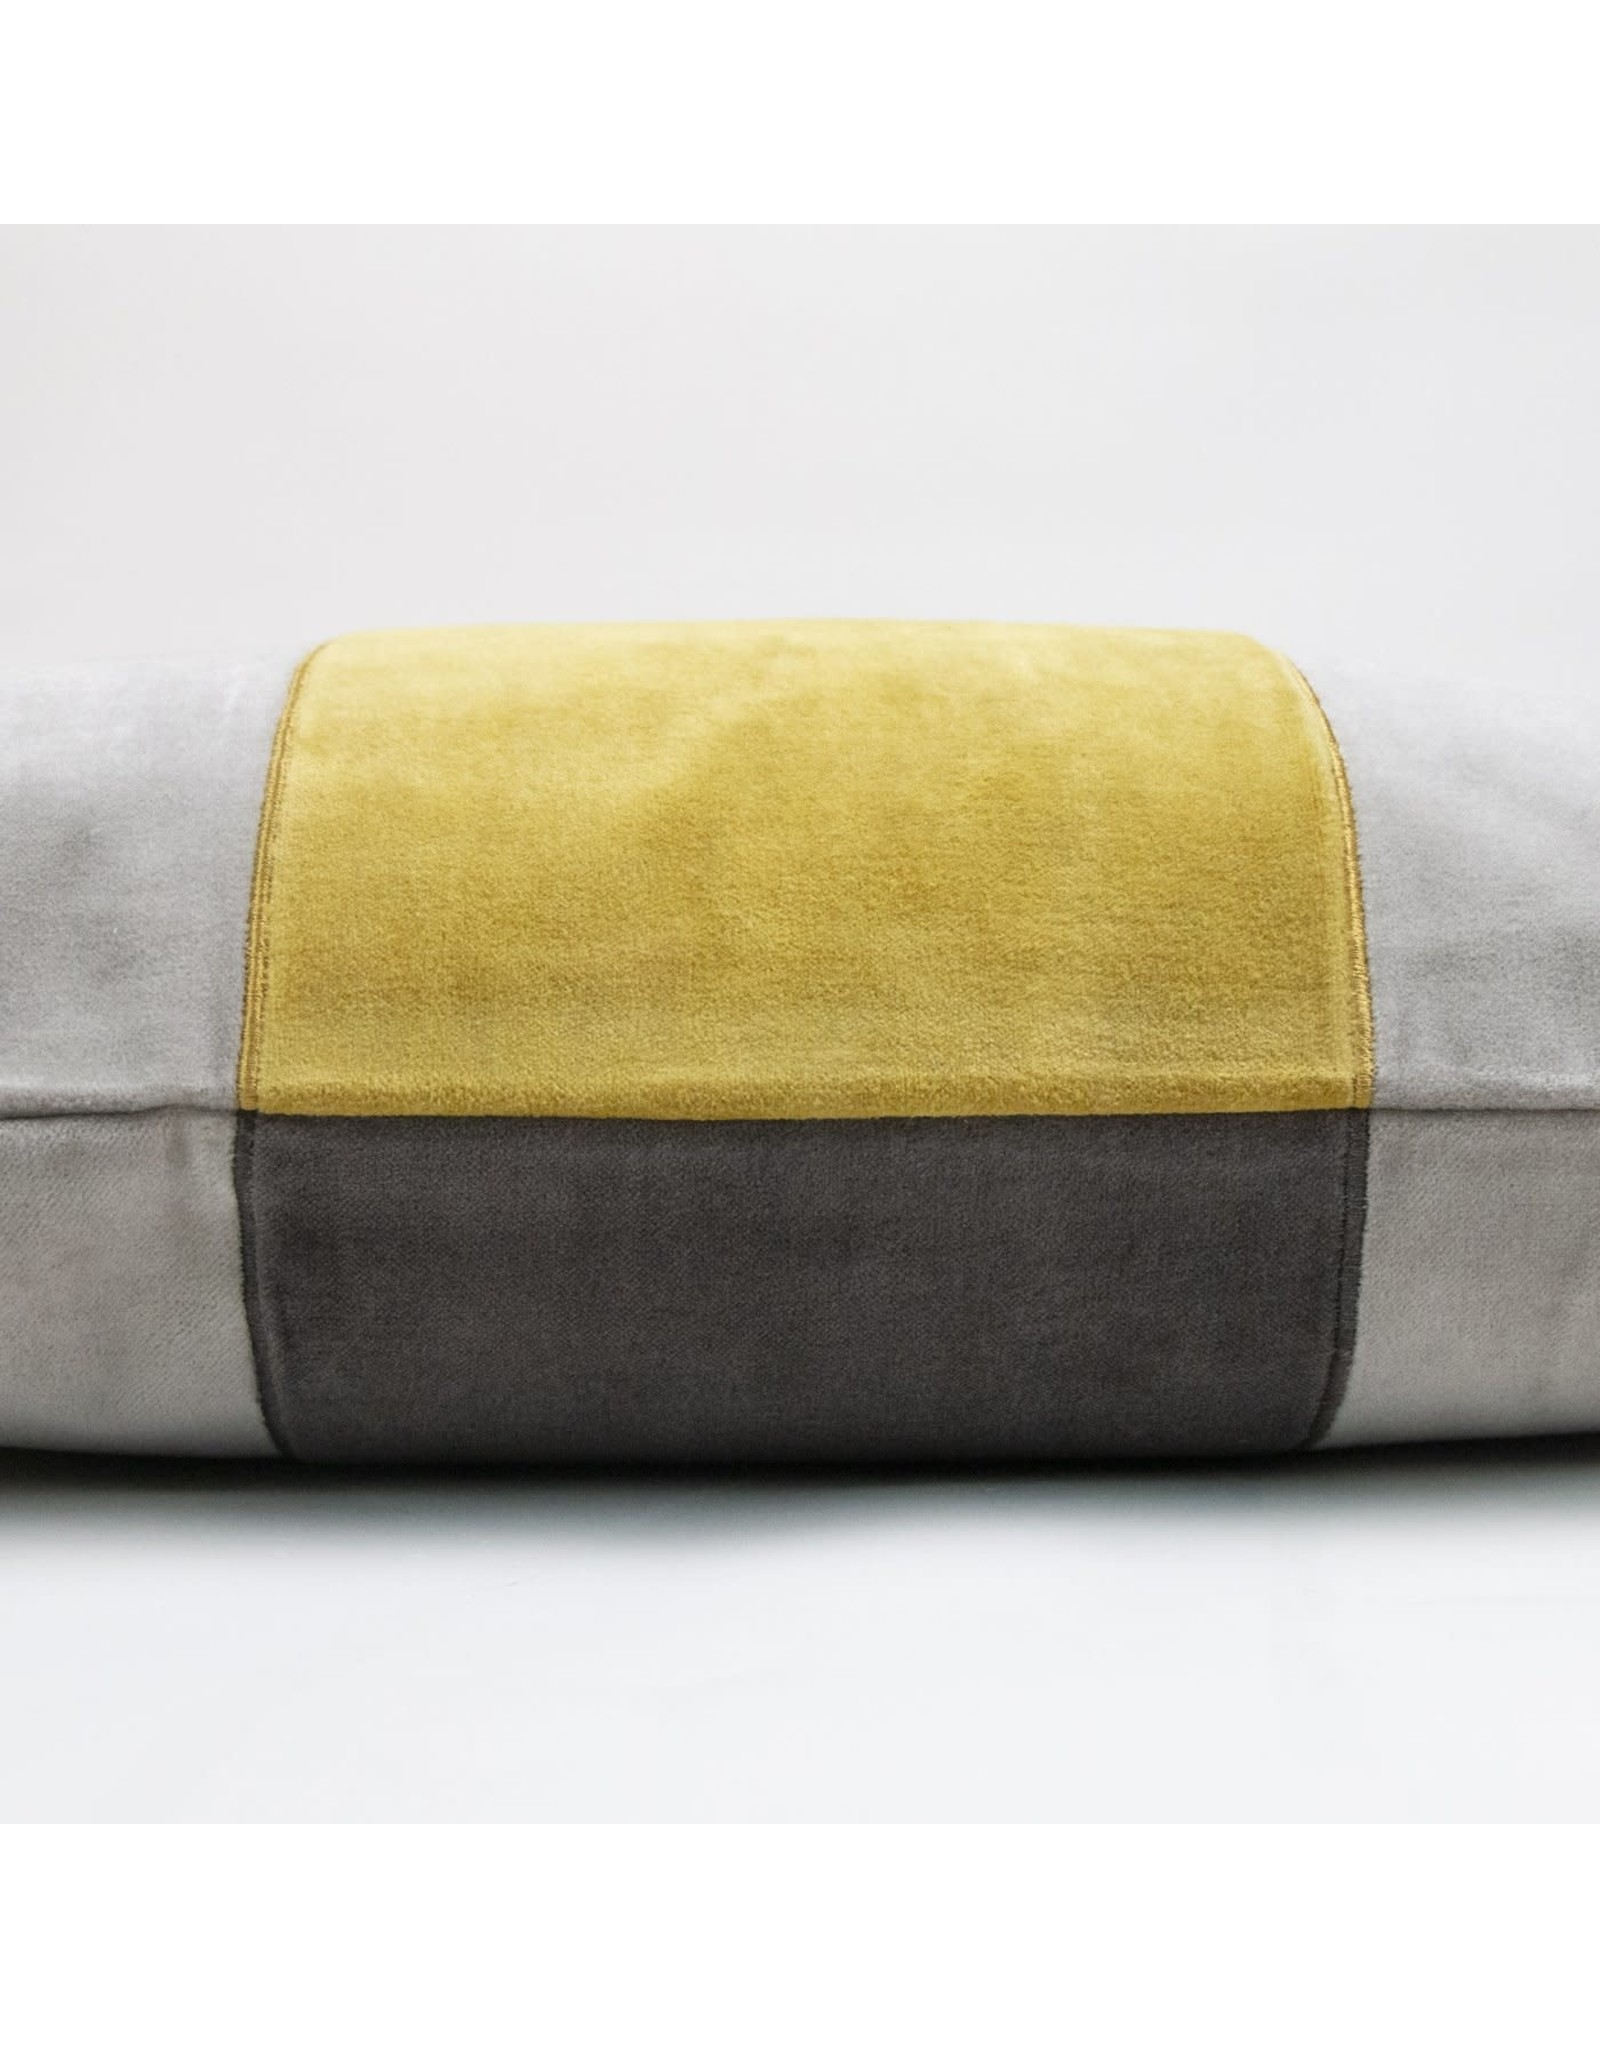 Cooper Pillow - Yellow/Grey 14x20